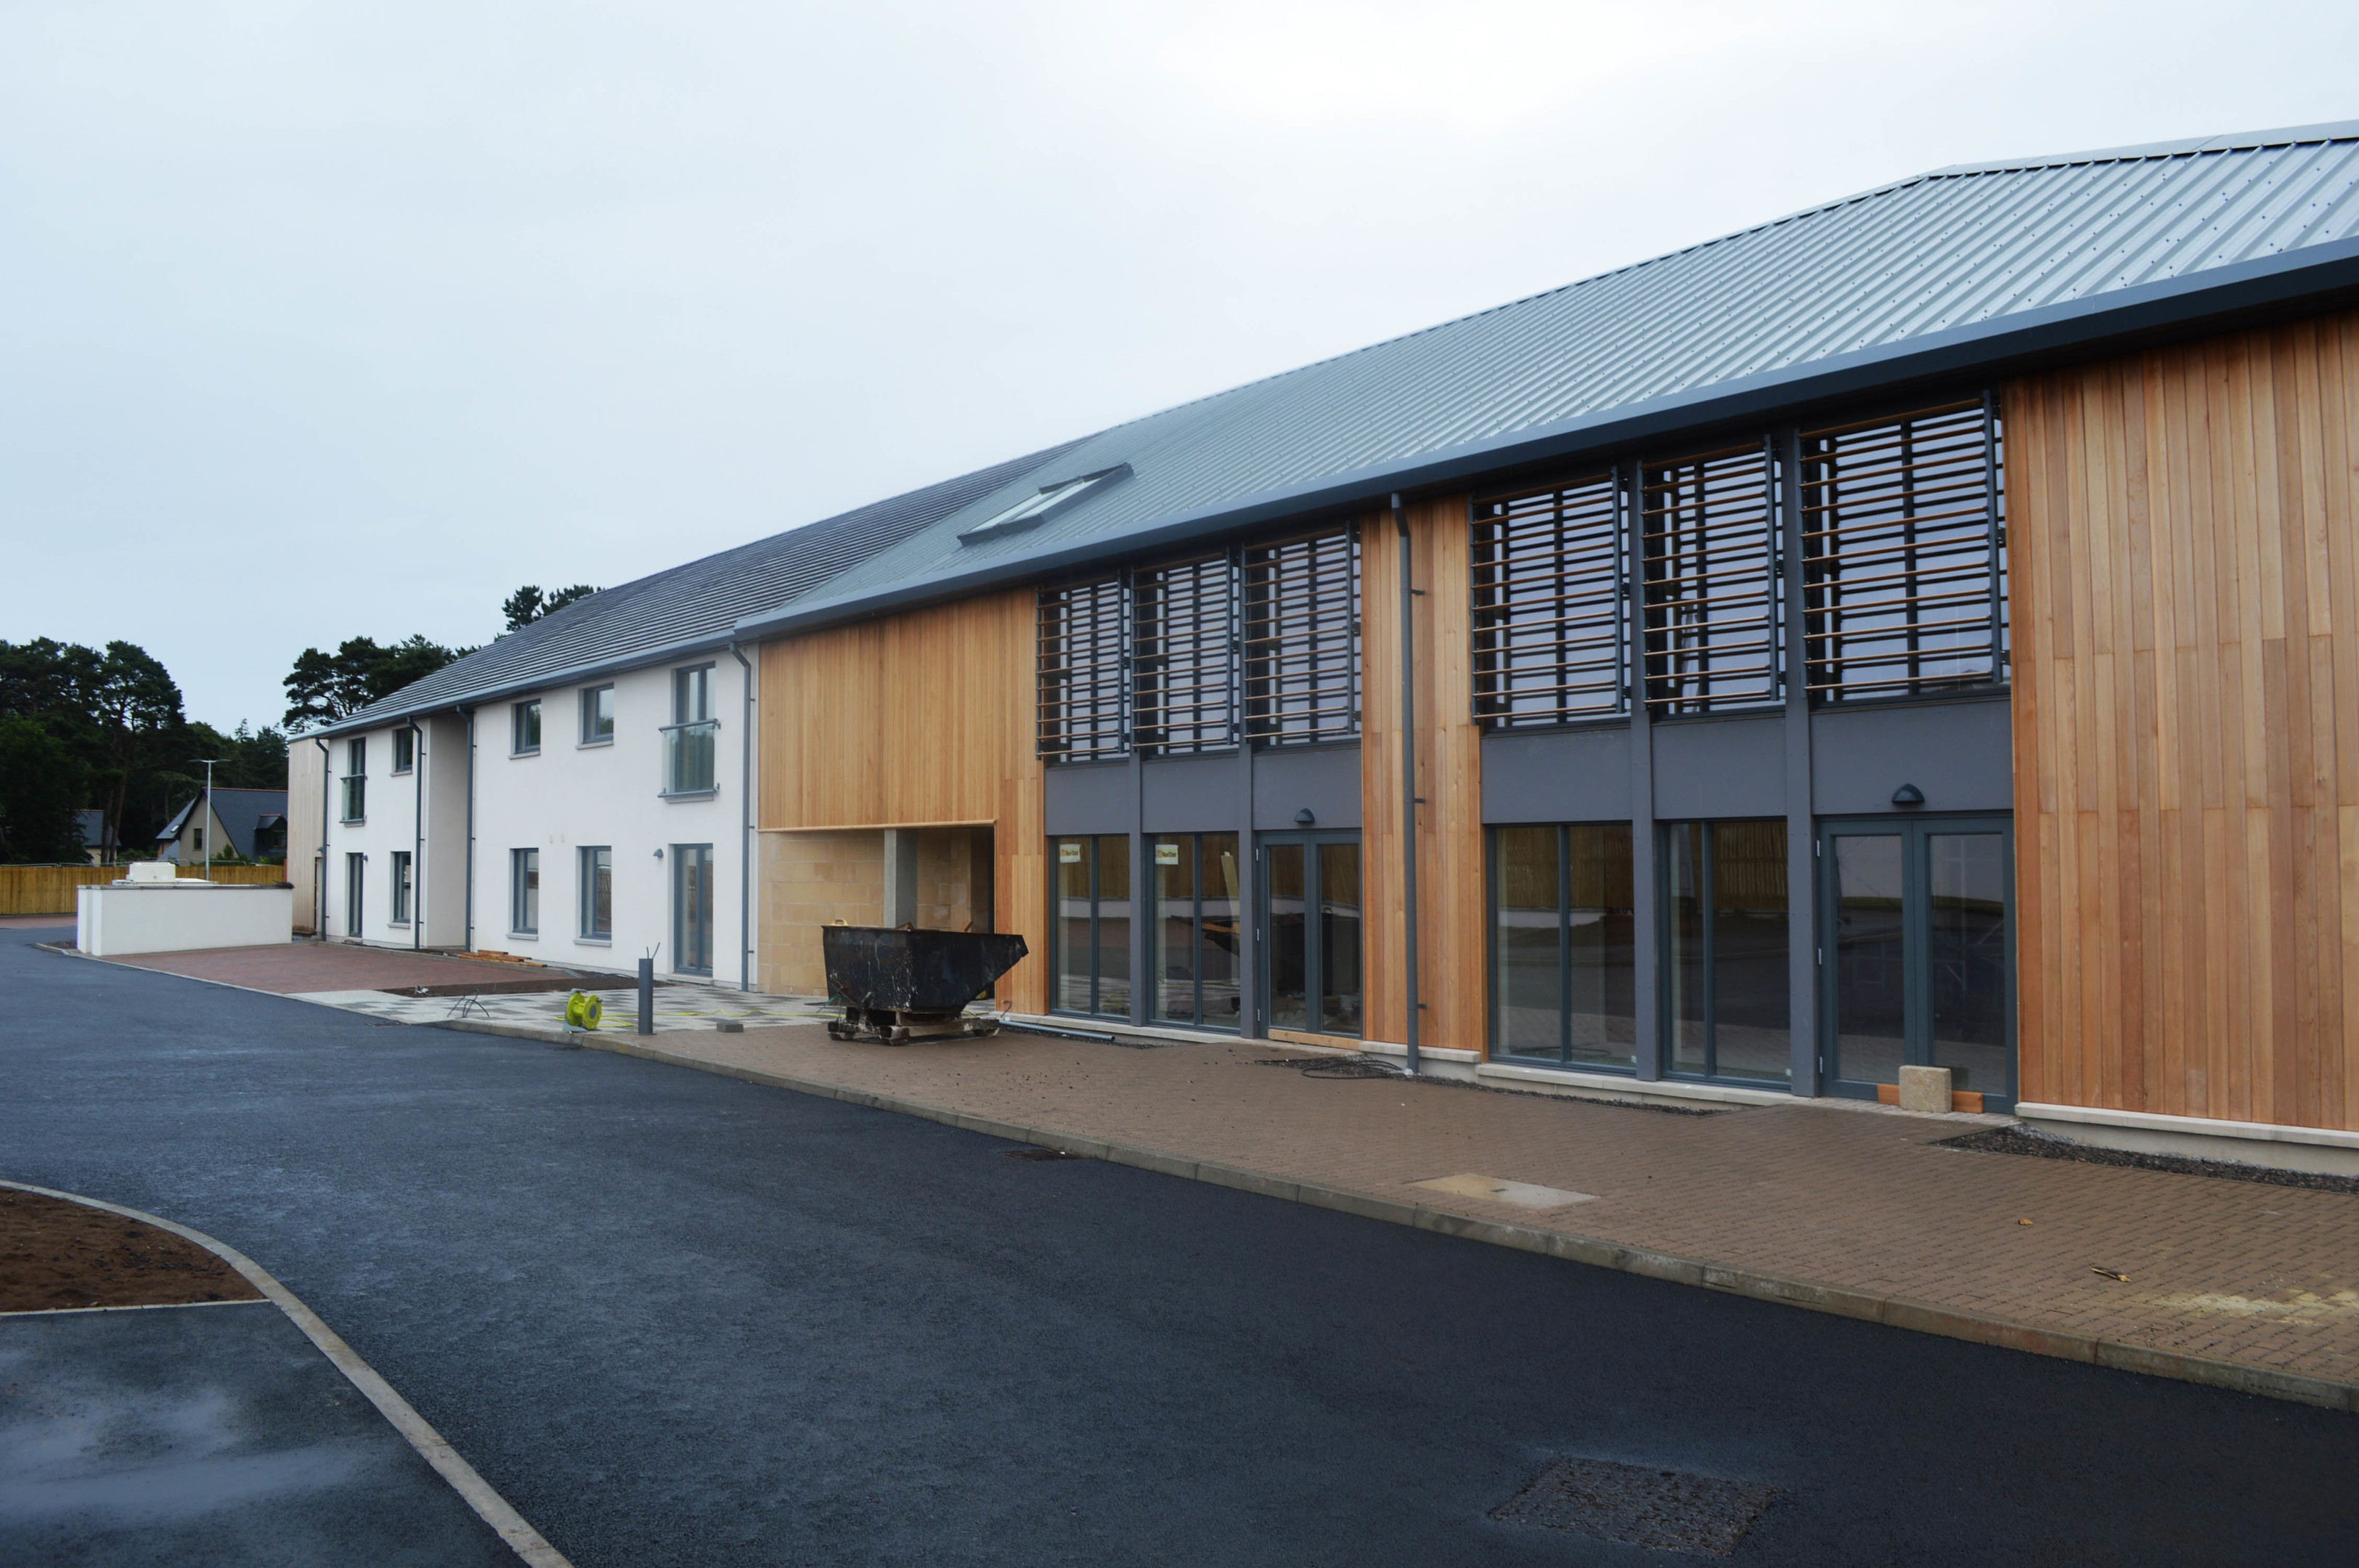 The Linkwood View complex took just over a year to build.